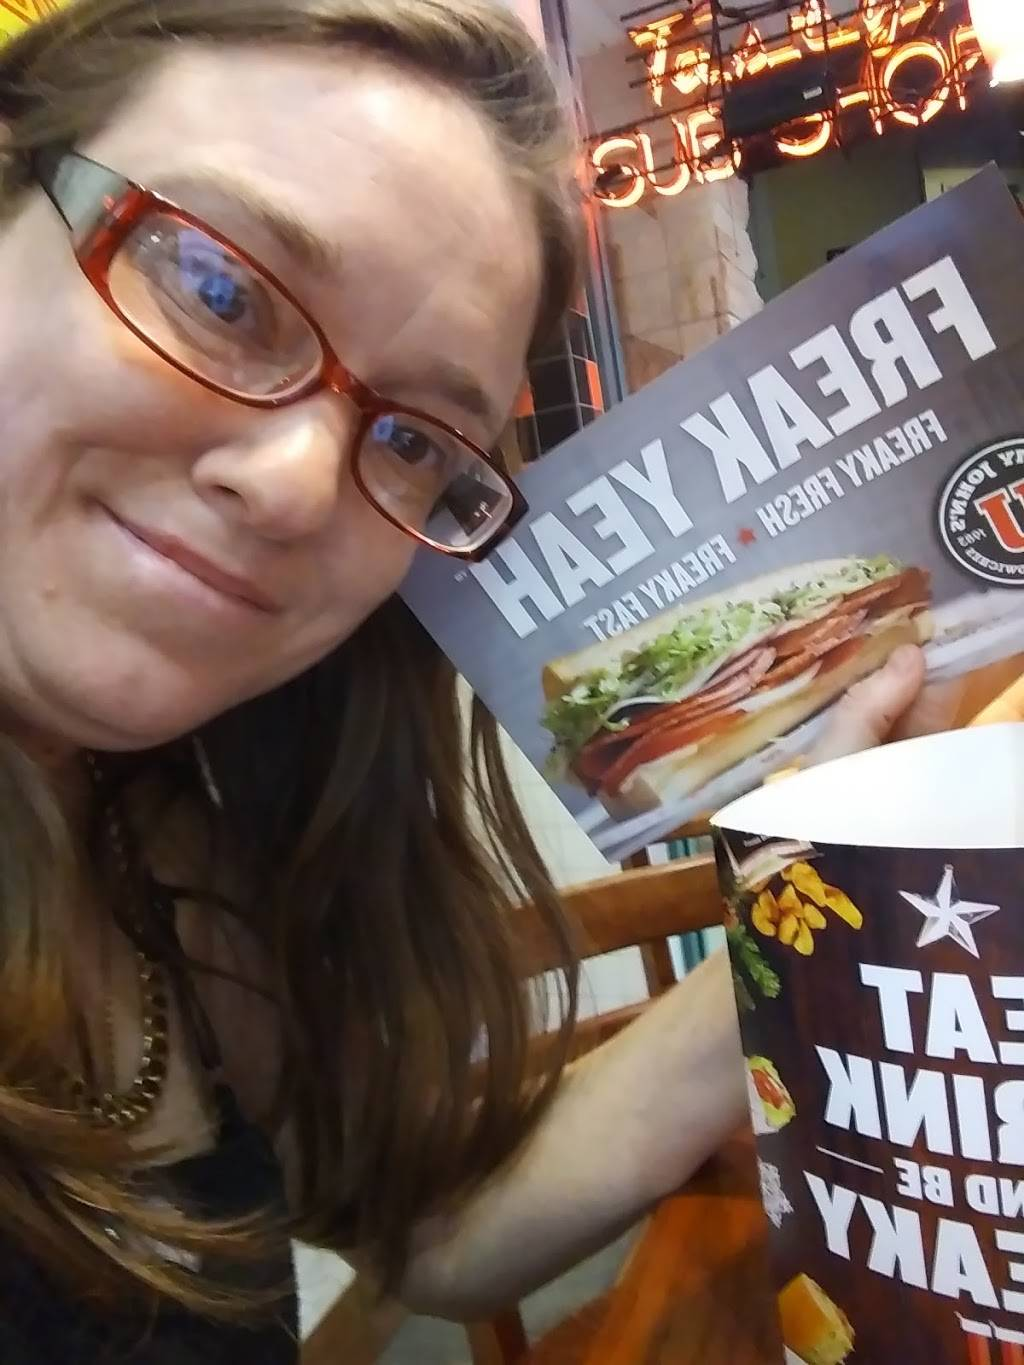 Jimmy Johns | meal delivery | 2613 Gulf to Bay Blvd #1680, Clearwater, FL 33759, USA | 7277266393 OR +1 727-726-6393